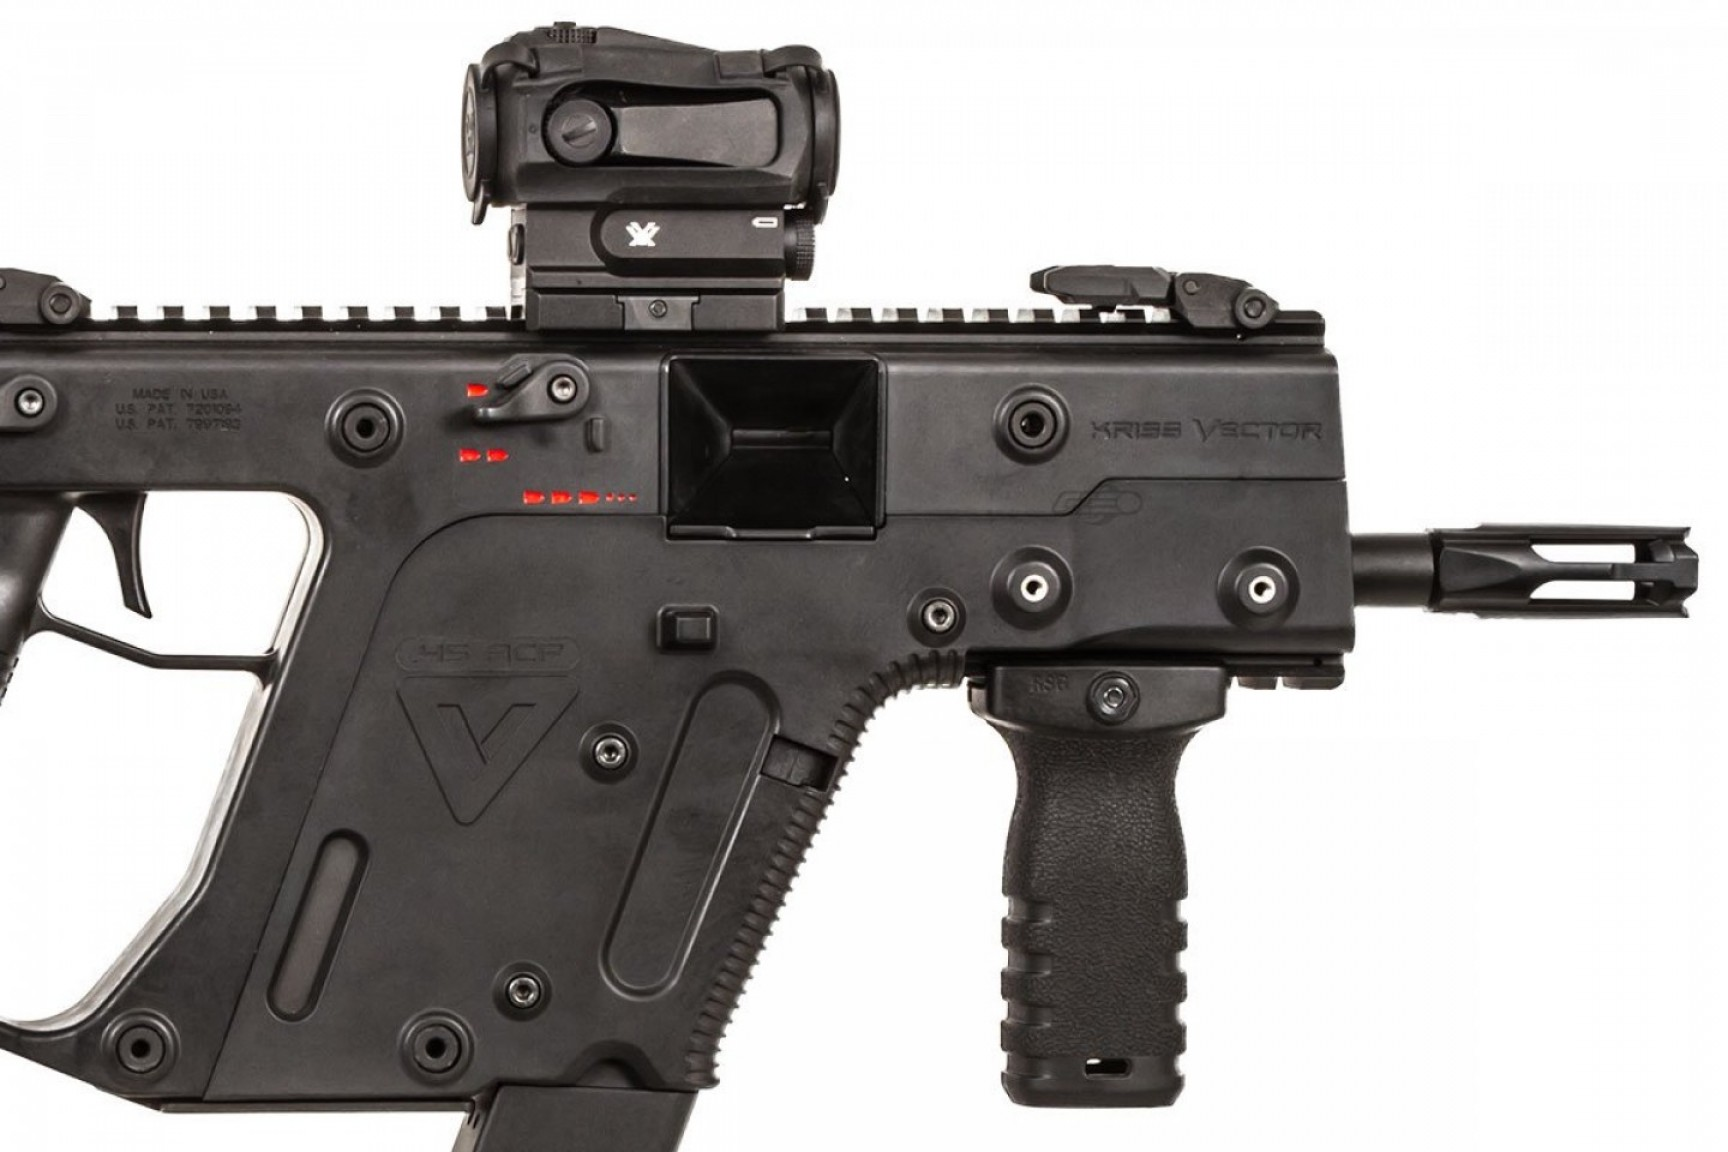 Kriss vector clipart stock Kriss Vector Parts And Accessories | SOIDERGI stock